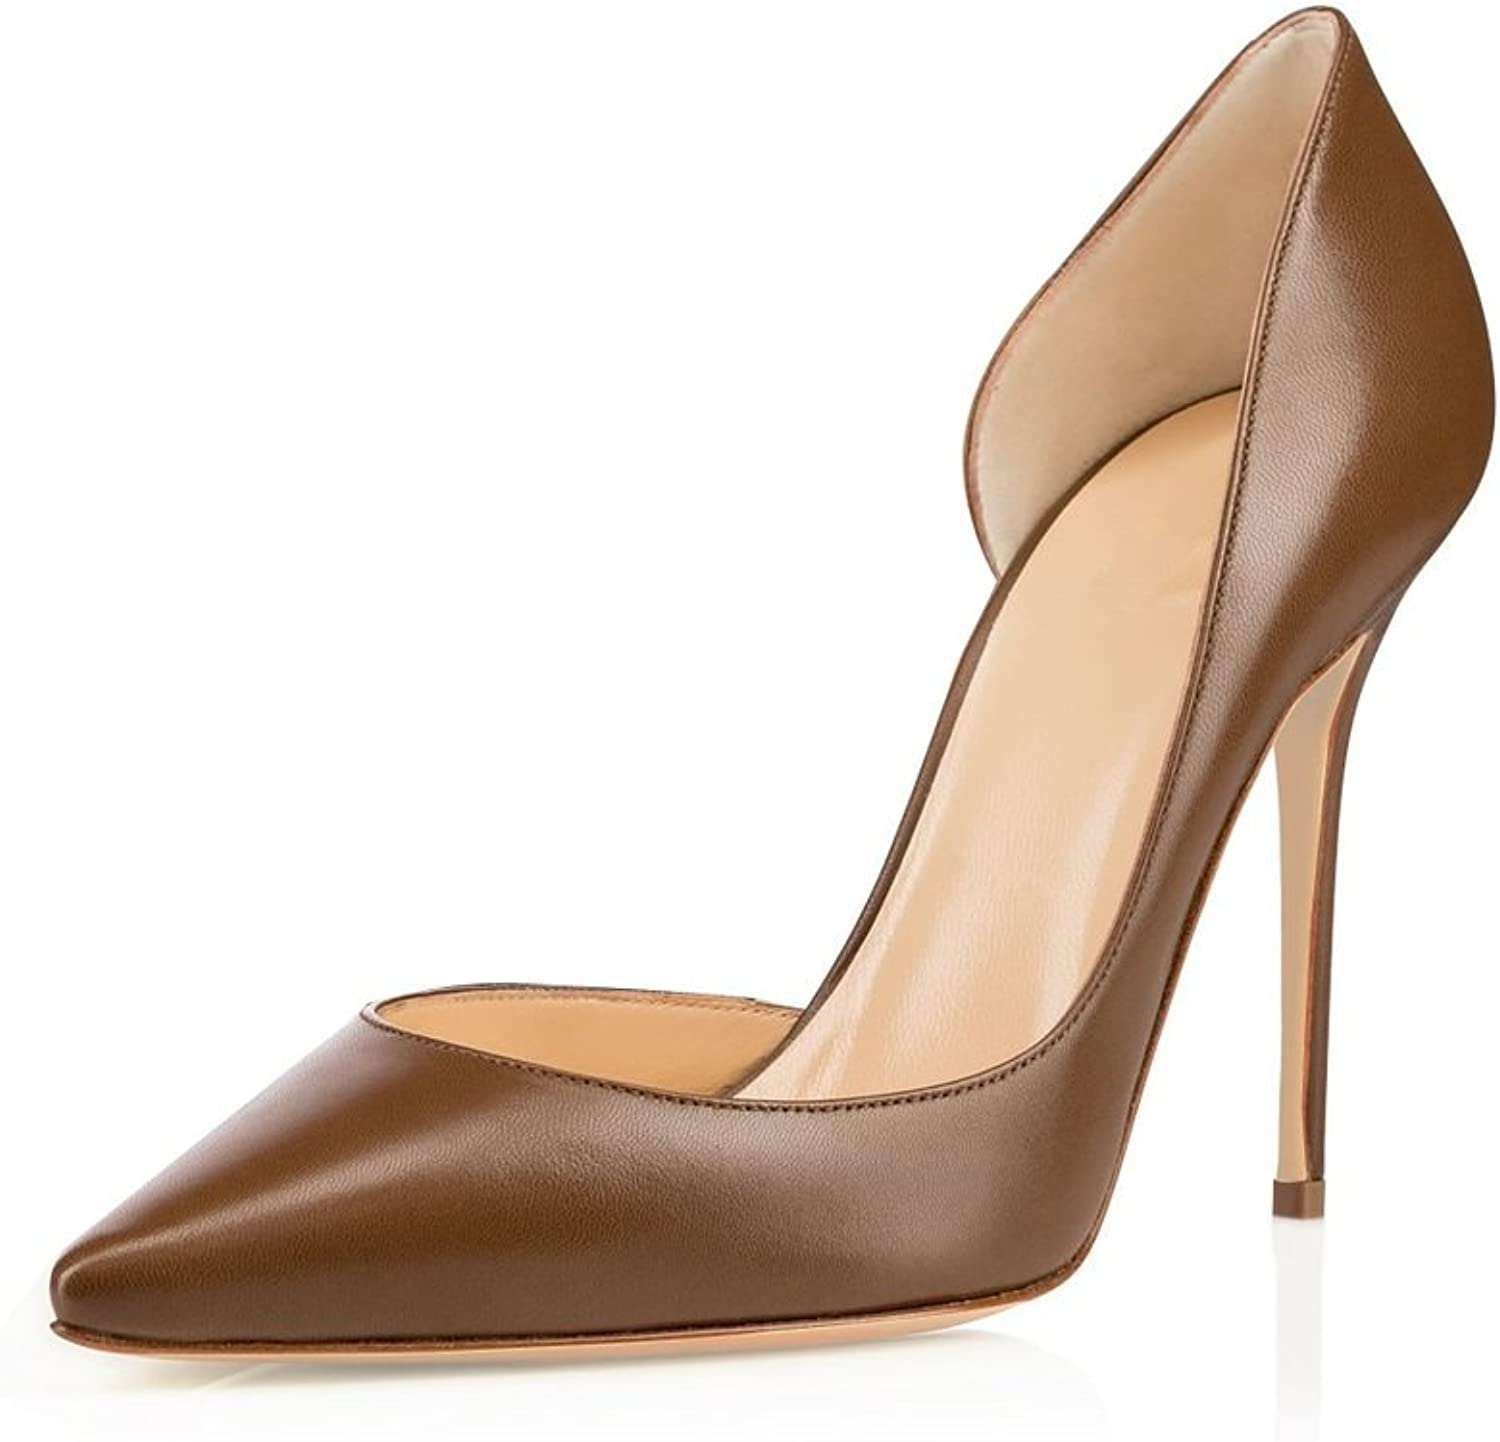 Sammitop Women's Pointed Toe Pumps High Heel D'Orsay shoes Stilettos Two-Pieces Dress shoes